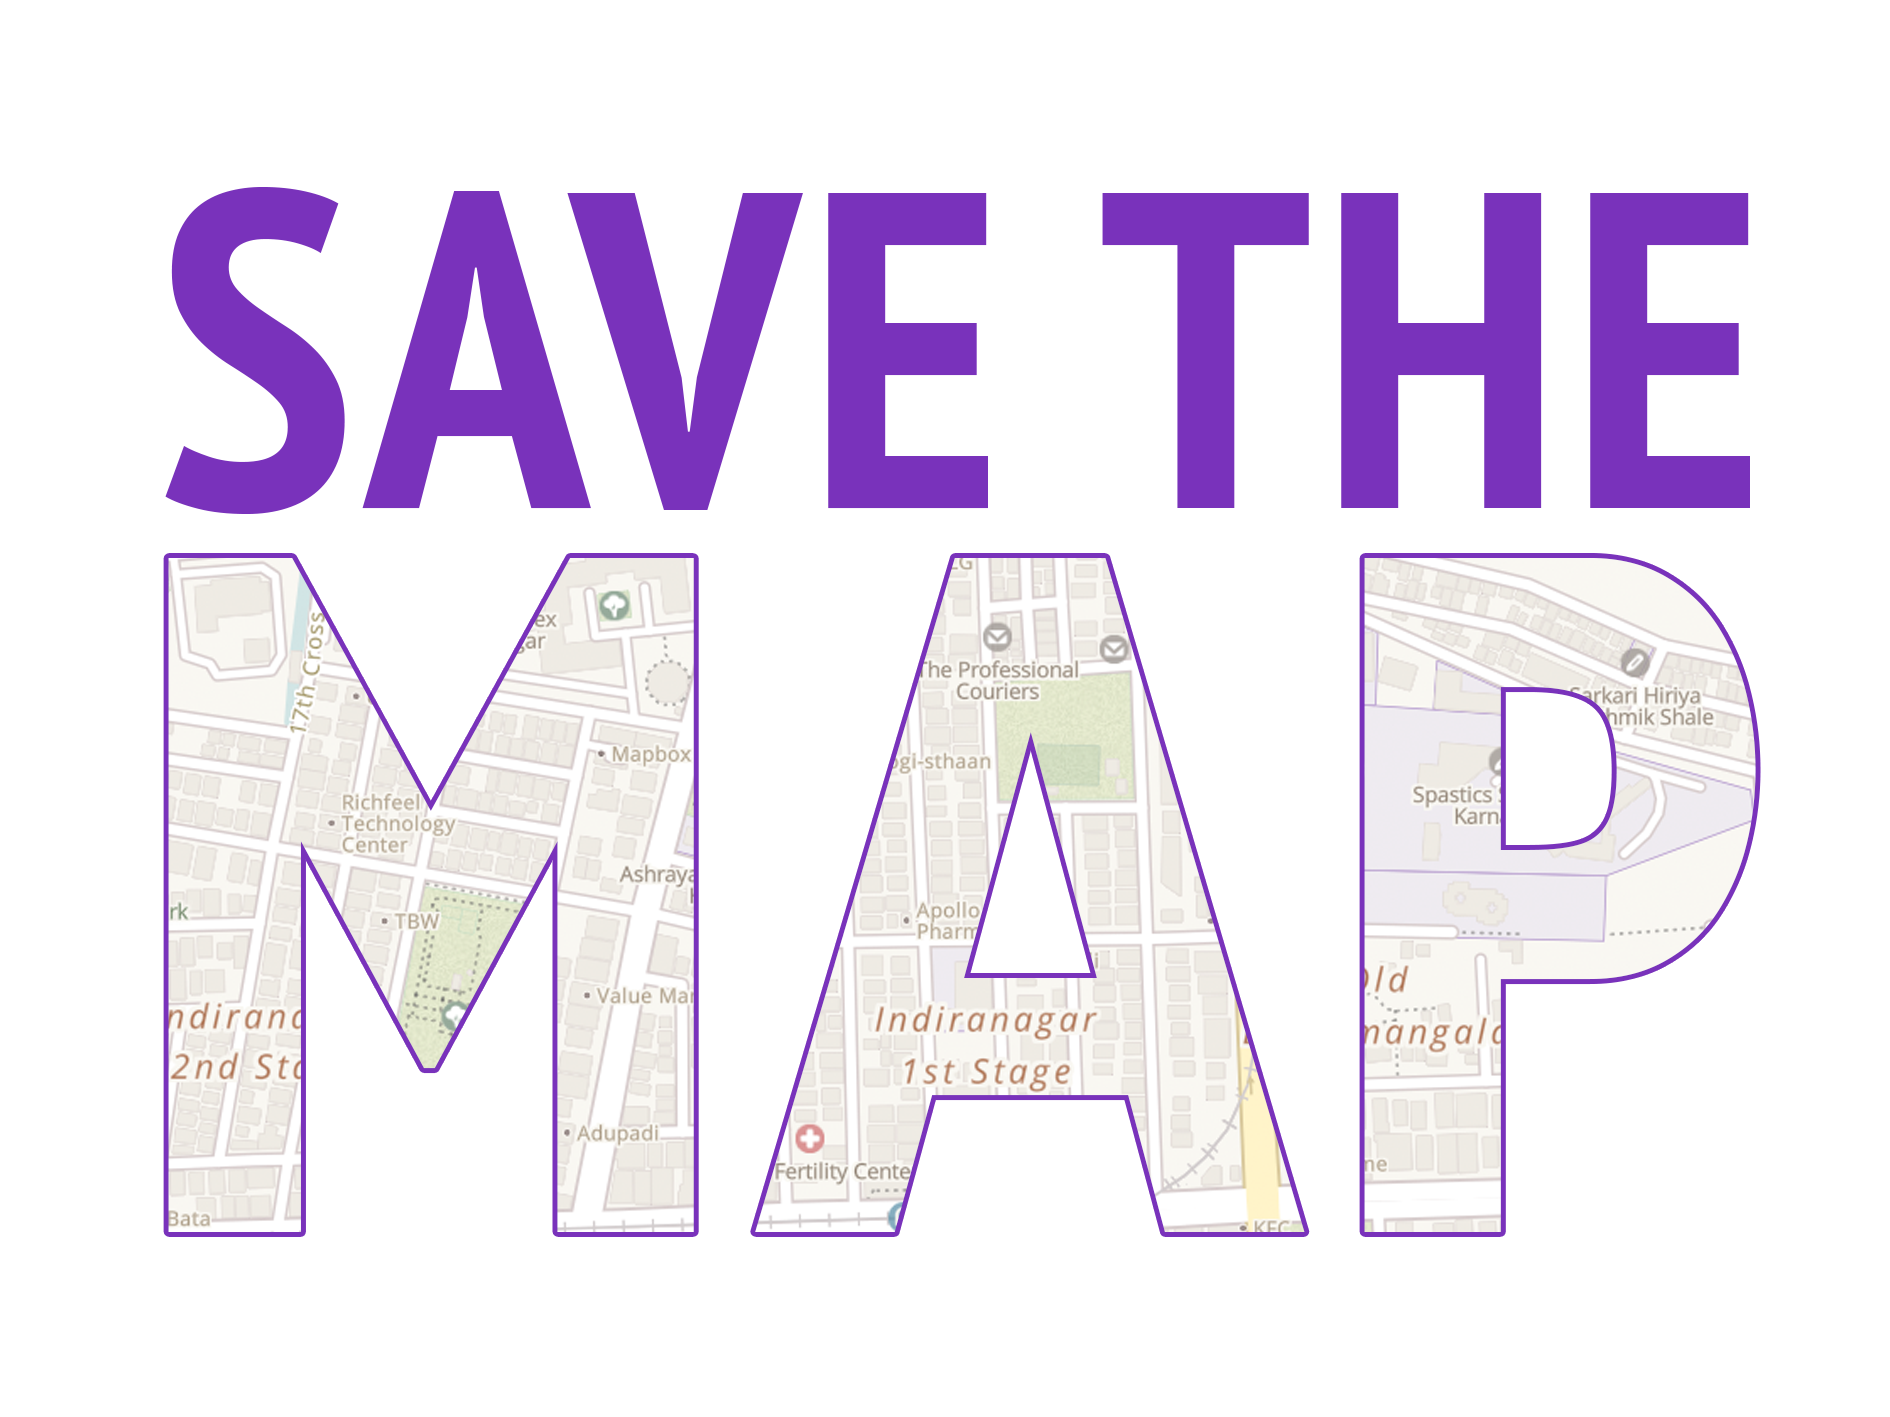 Save The Map: Response to the Geospatial Information Regulation Bill, 2016